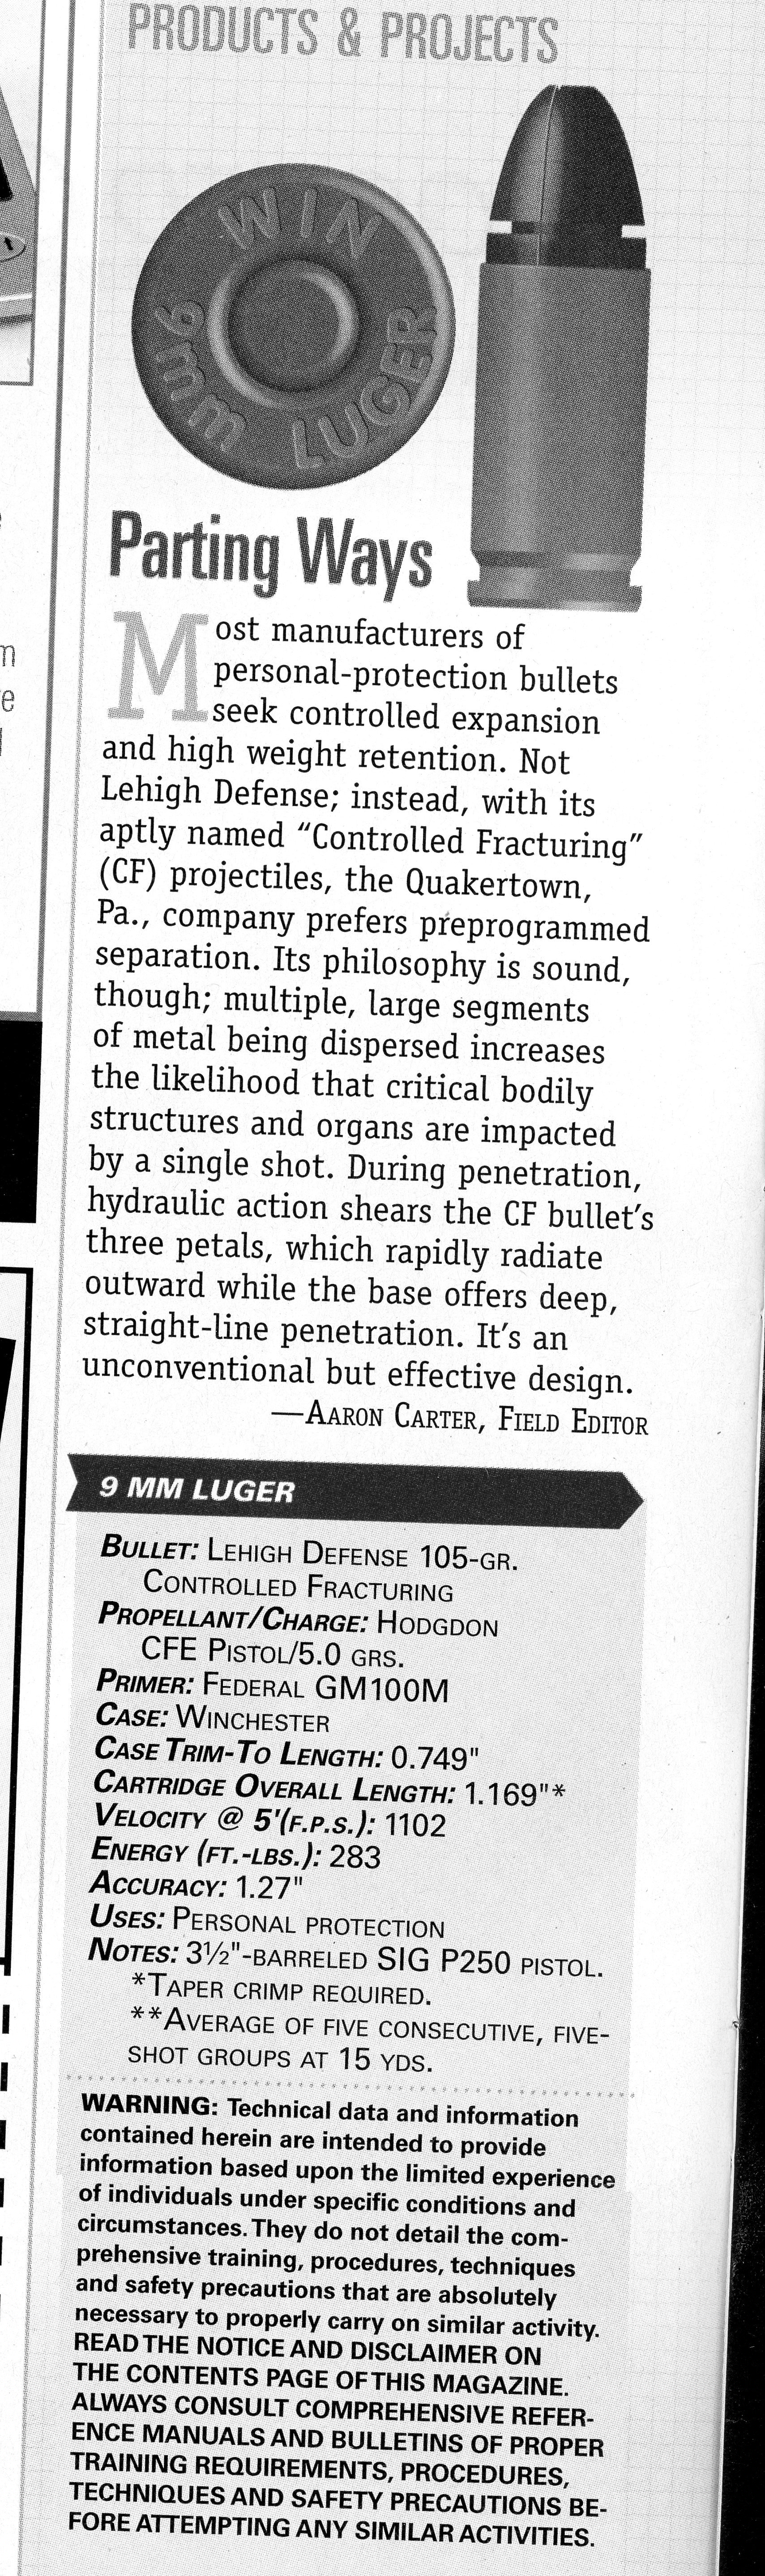 New bullet-amer-rifle-bullet-article-p44.jpg